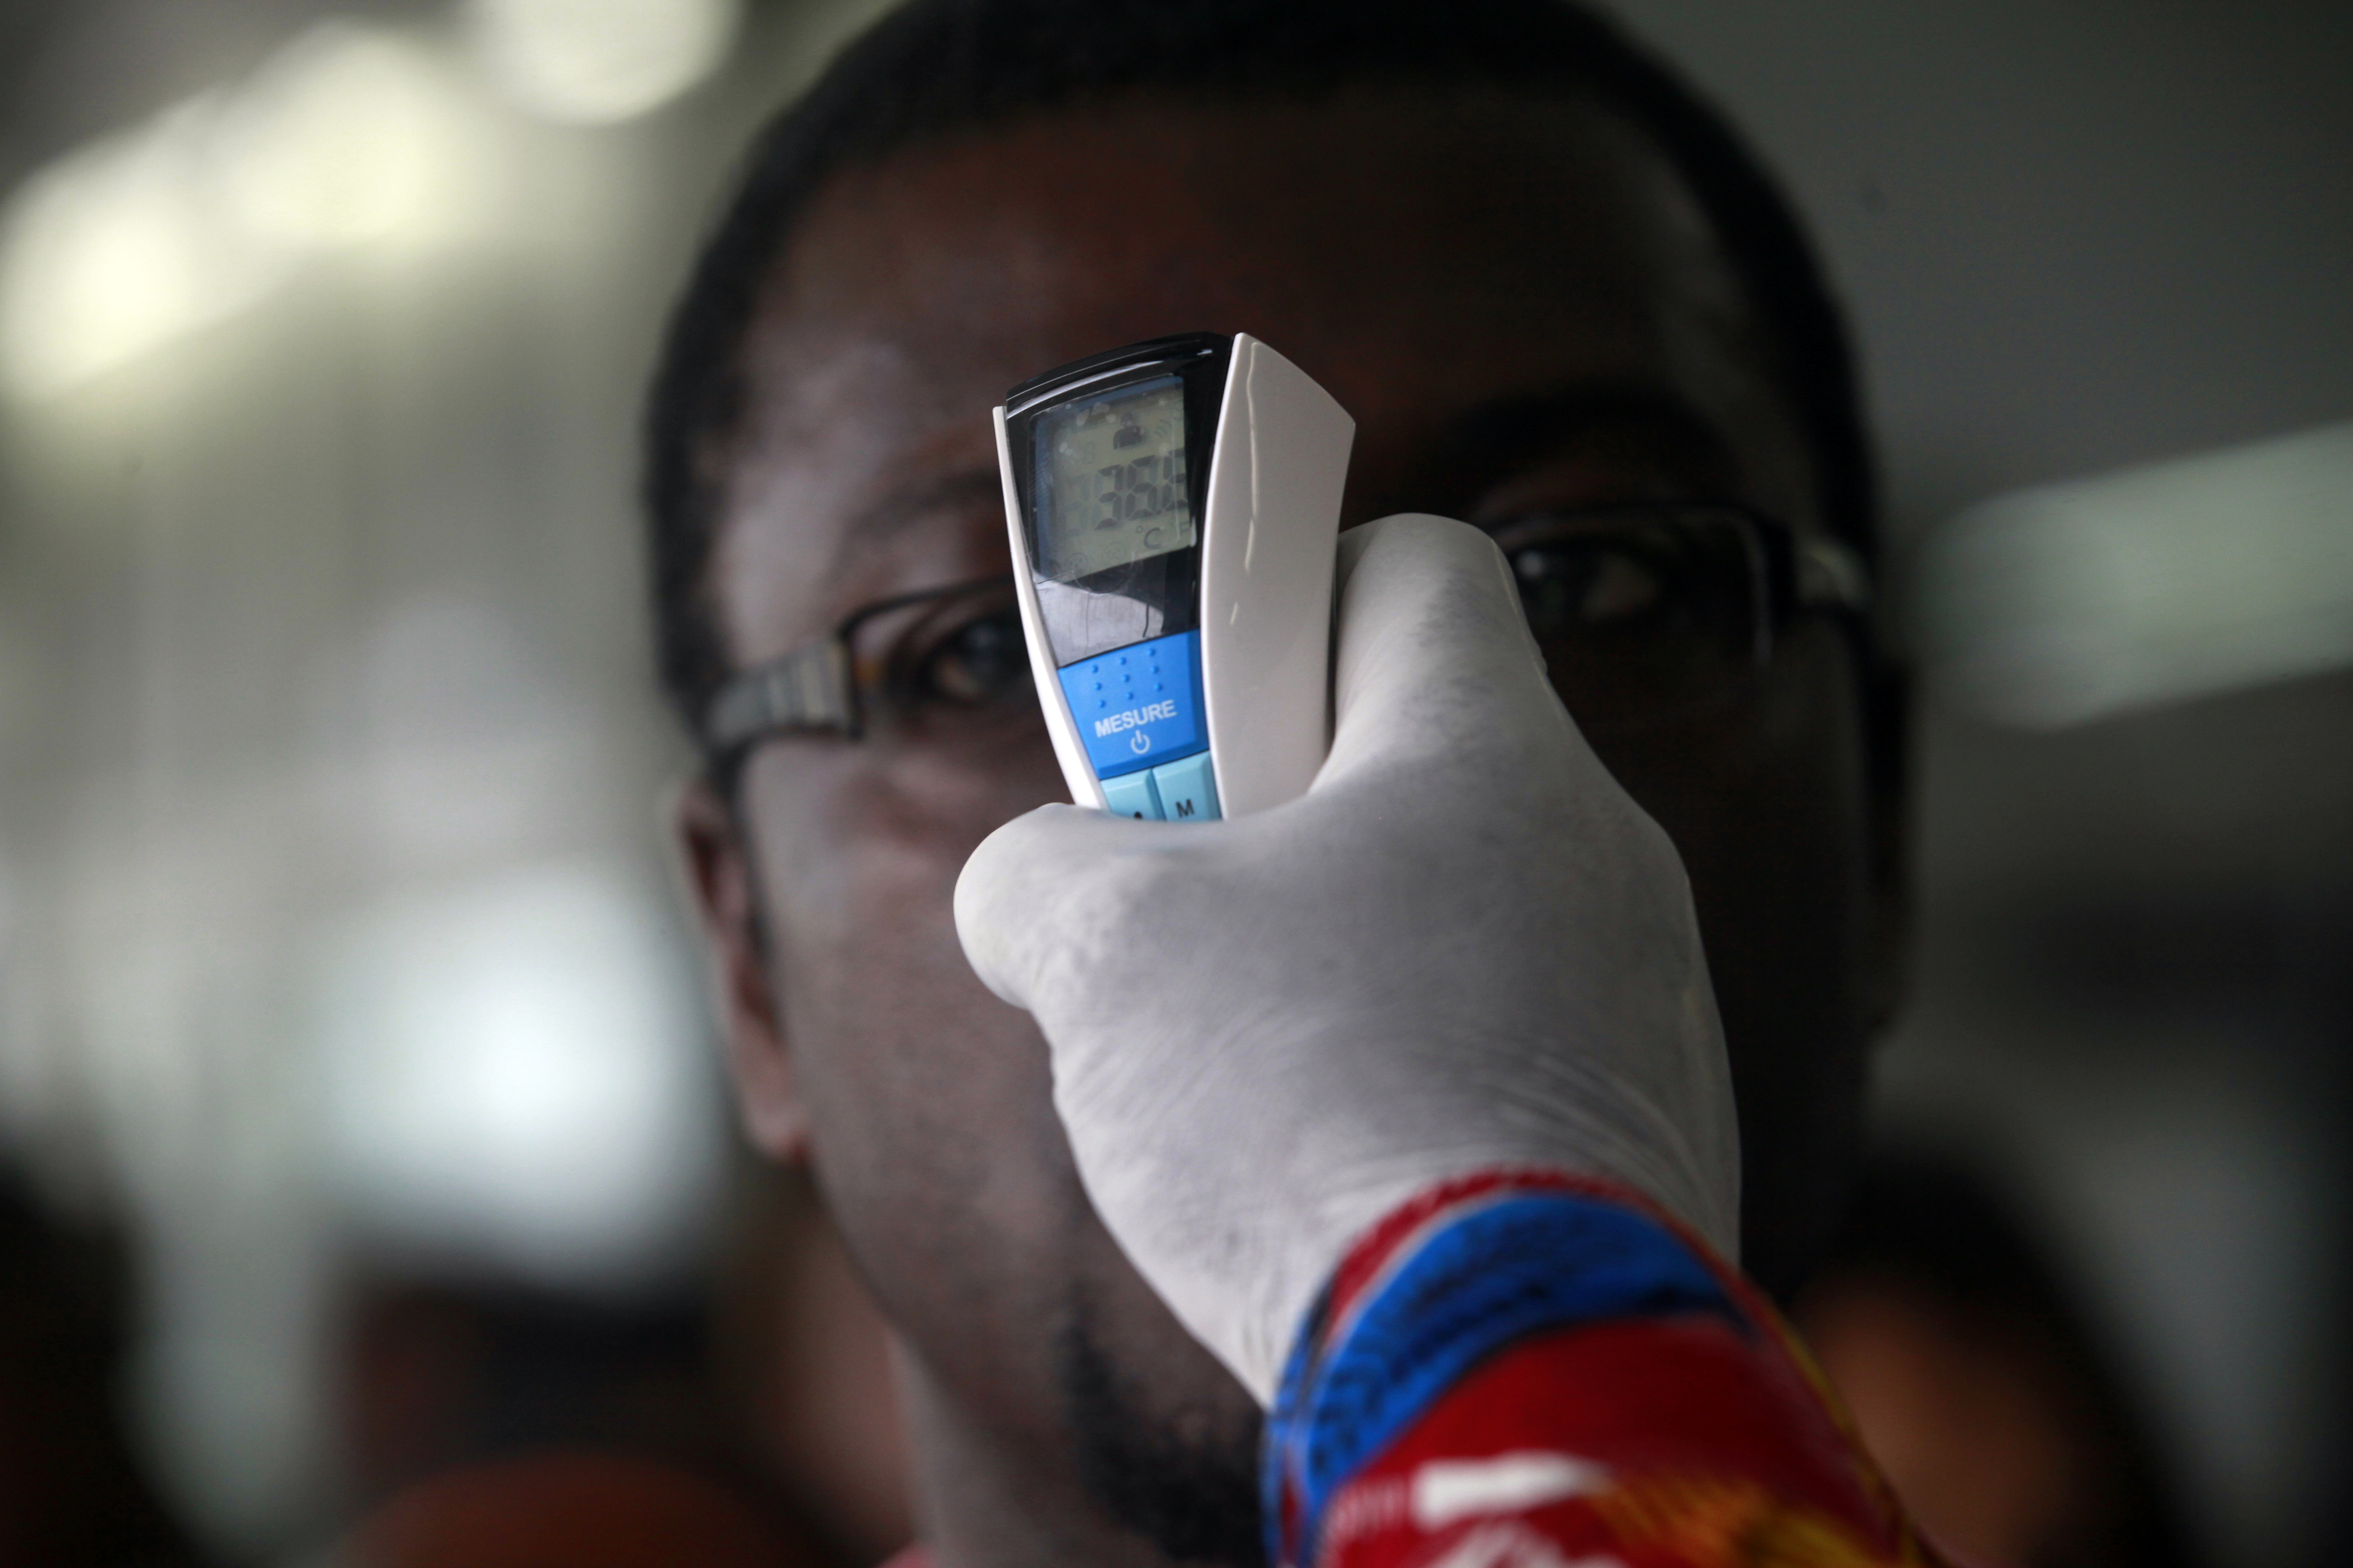 A health worker takes a passenger's temperature with an infrared digital laser thermometer at the Felix Houphouet Boigny international airport in Abidjan on August 13, 2014.